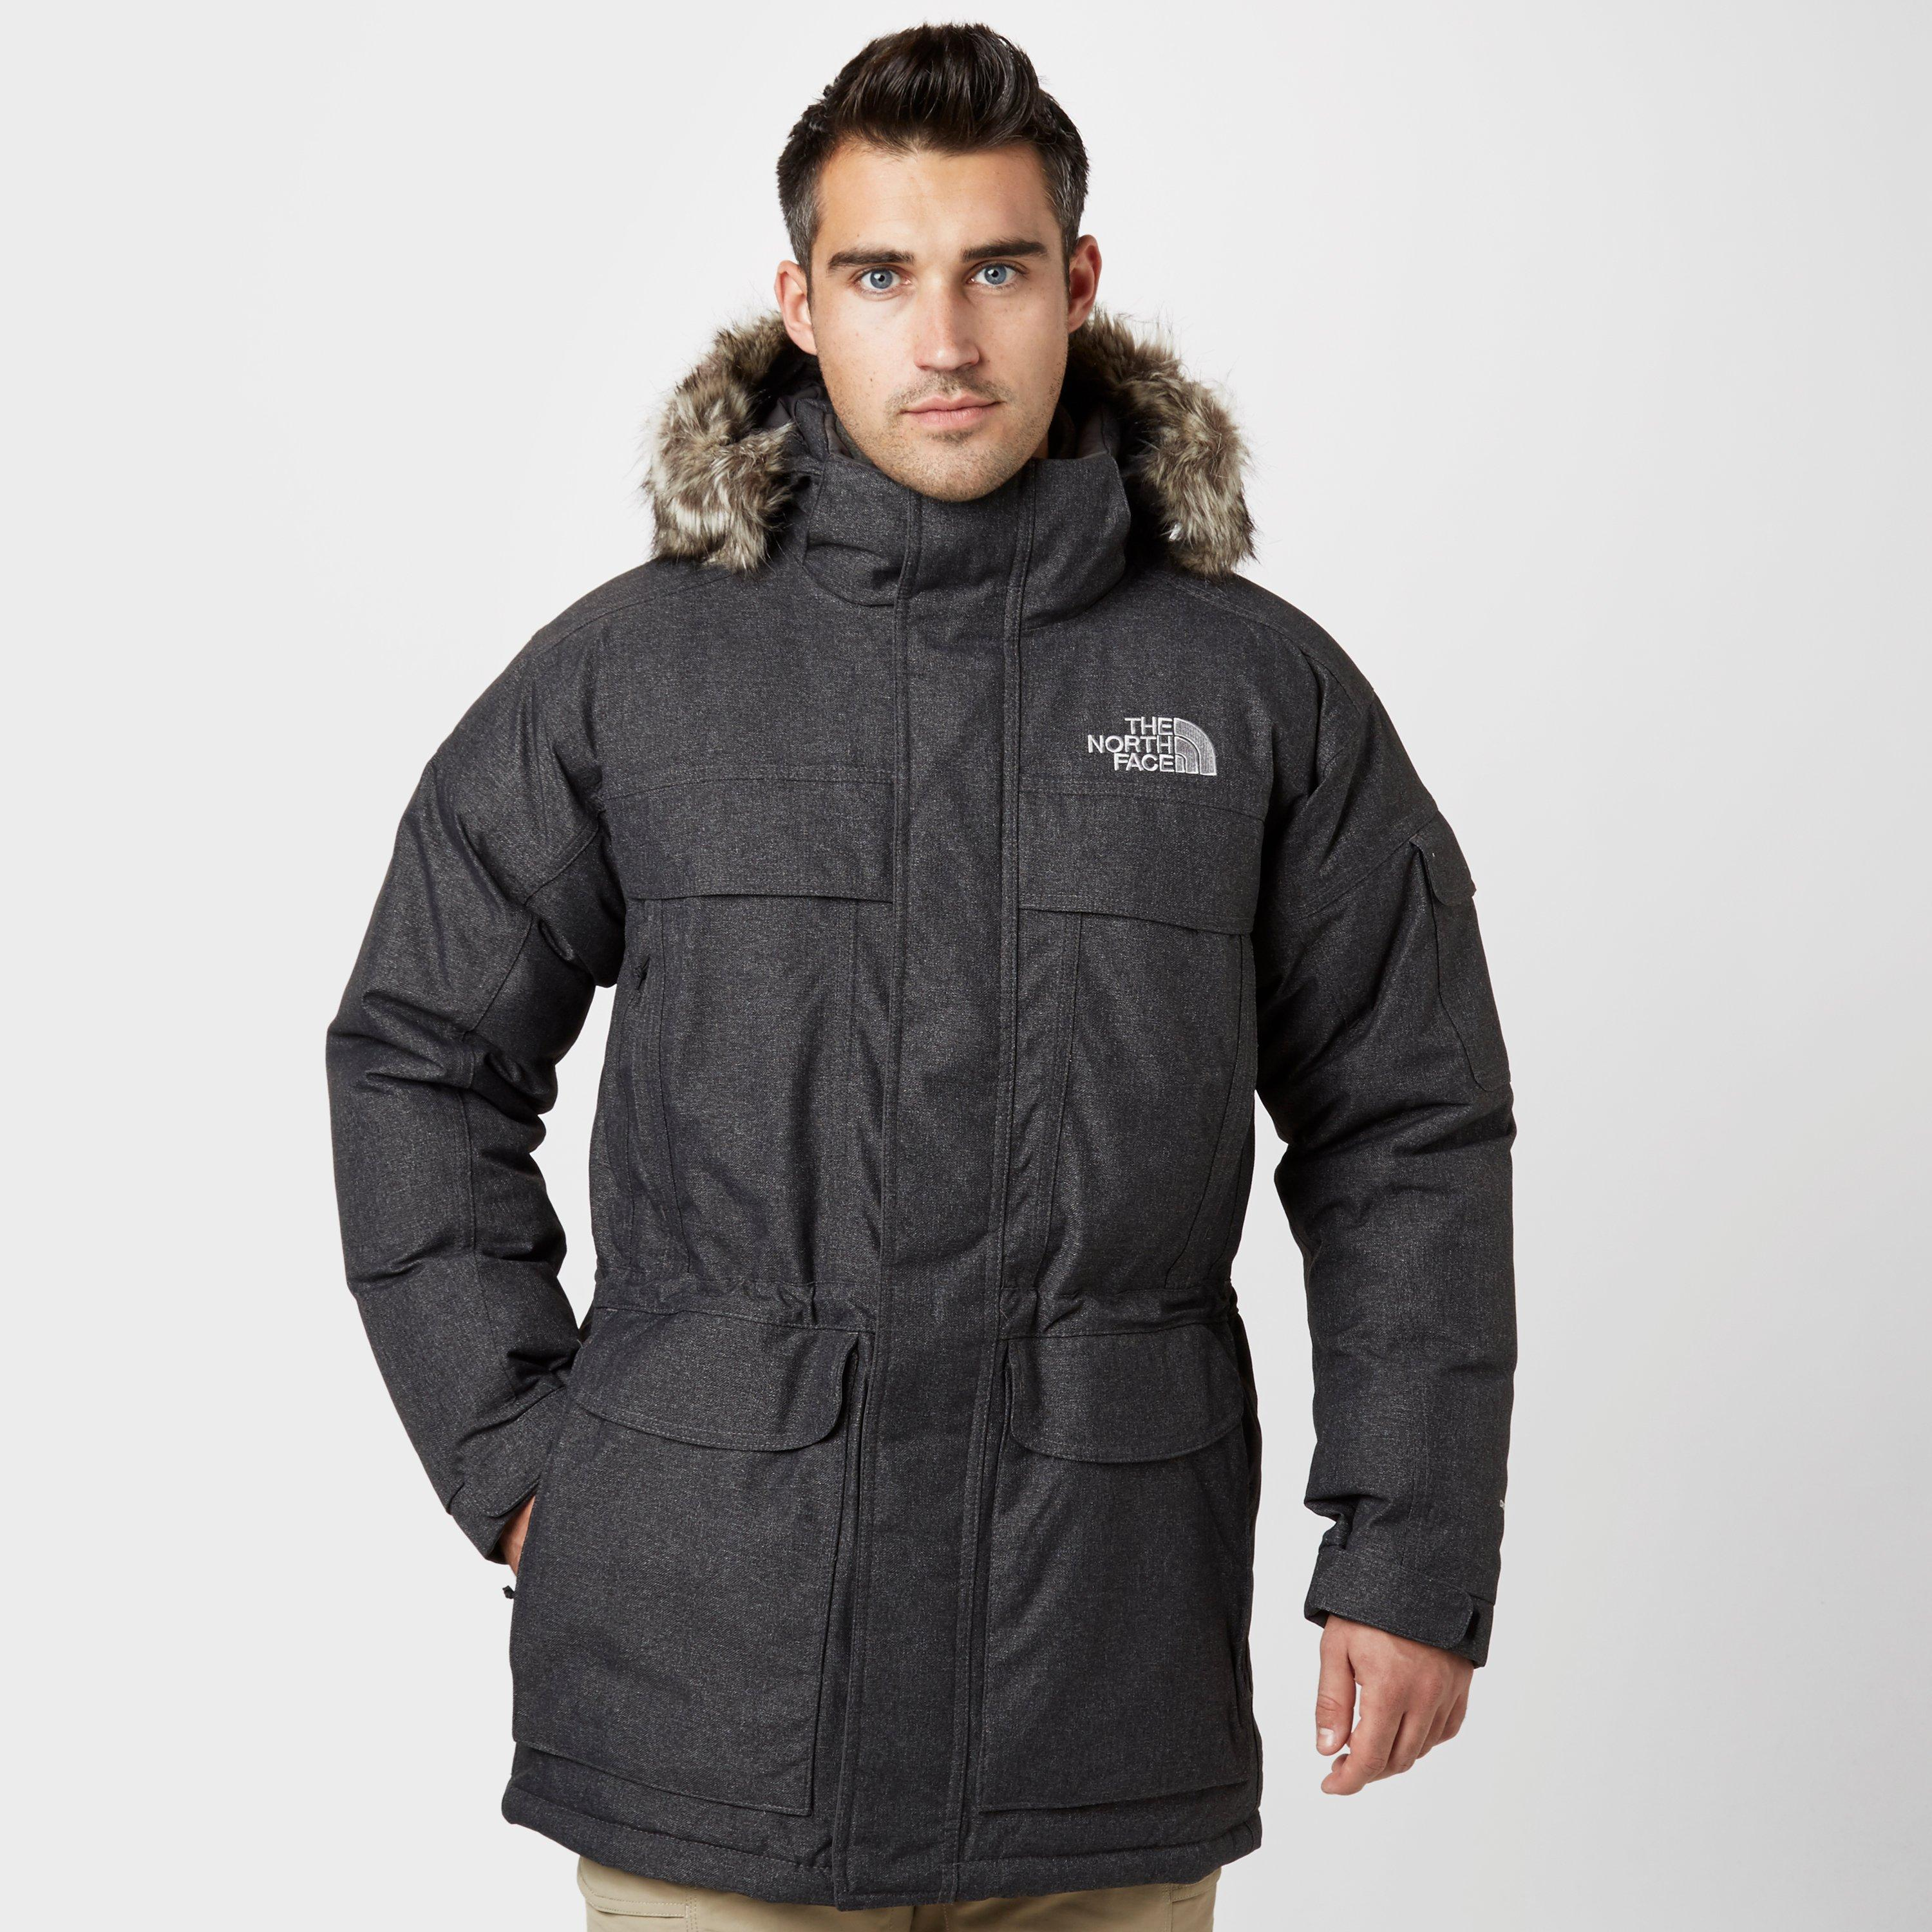 the north face mcmurdo parka men 39 s jacket compare compare outdoor jacket prices jacket. Black Bedroom Furniture Sets. Home Design Ideas